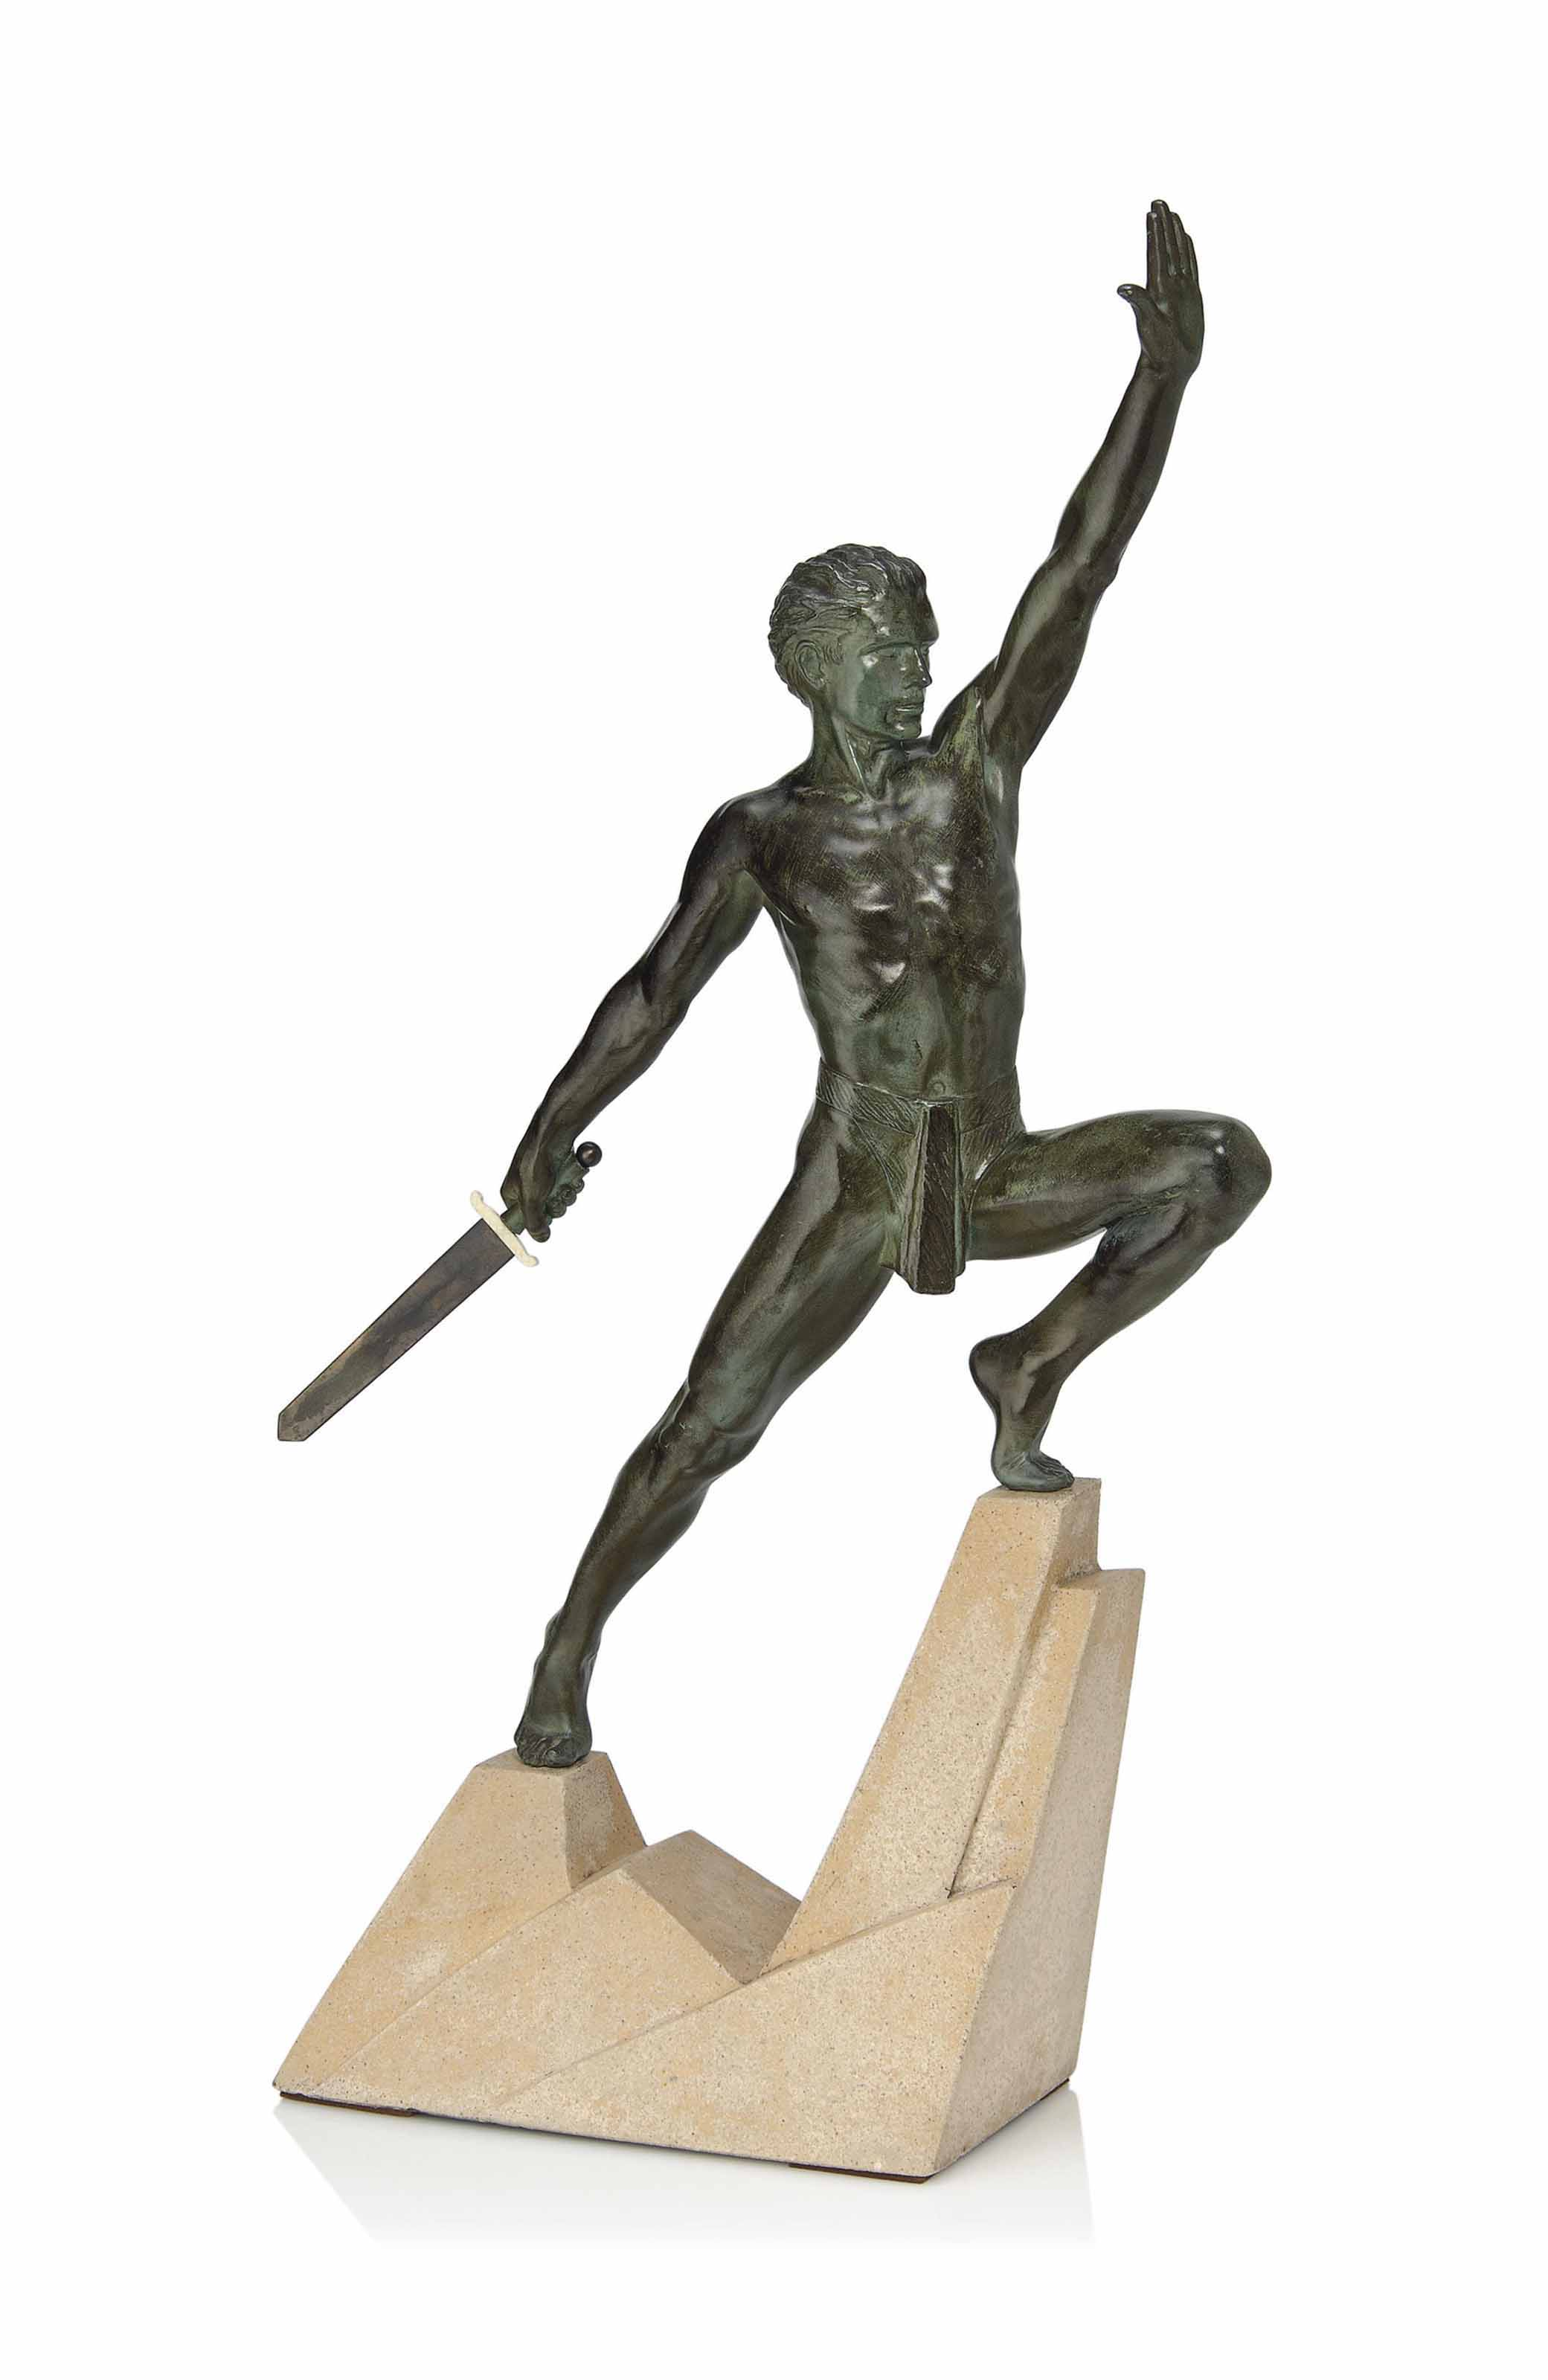 A MAX LE VERRIER (1891-1973) ART DECO COLD-PAINTED SPELTER AND IVORY FIGURE